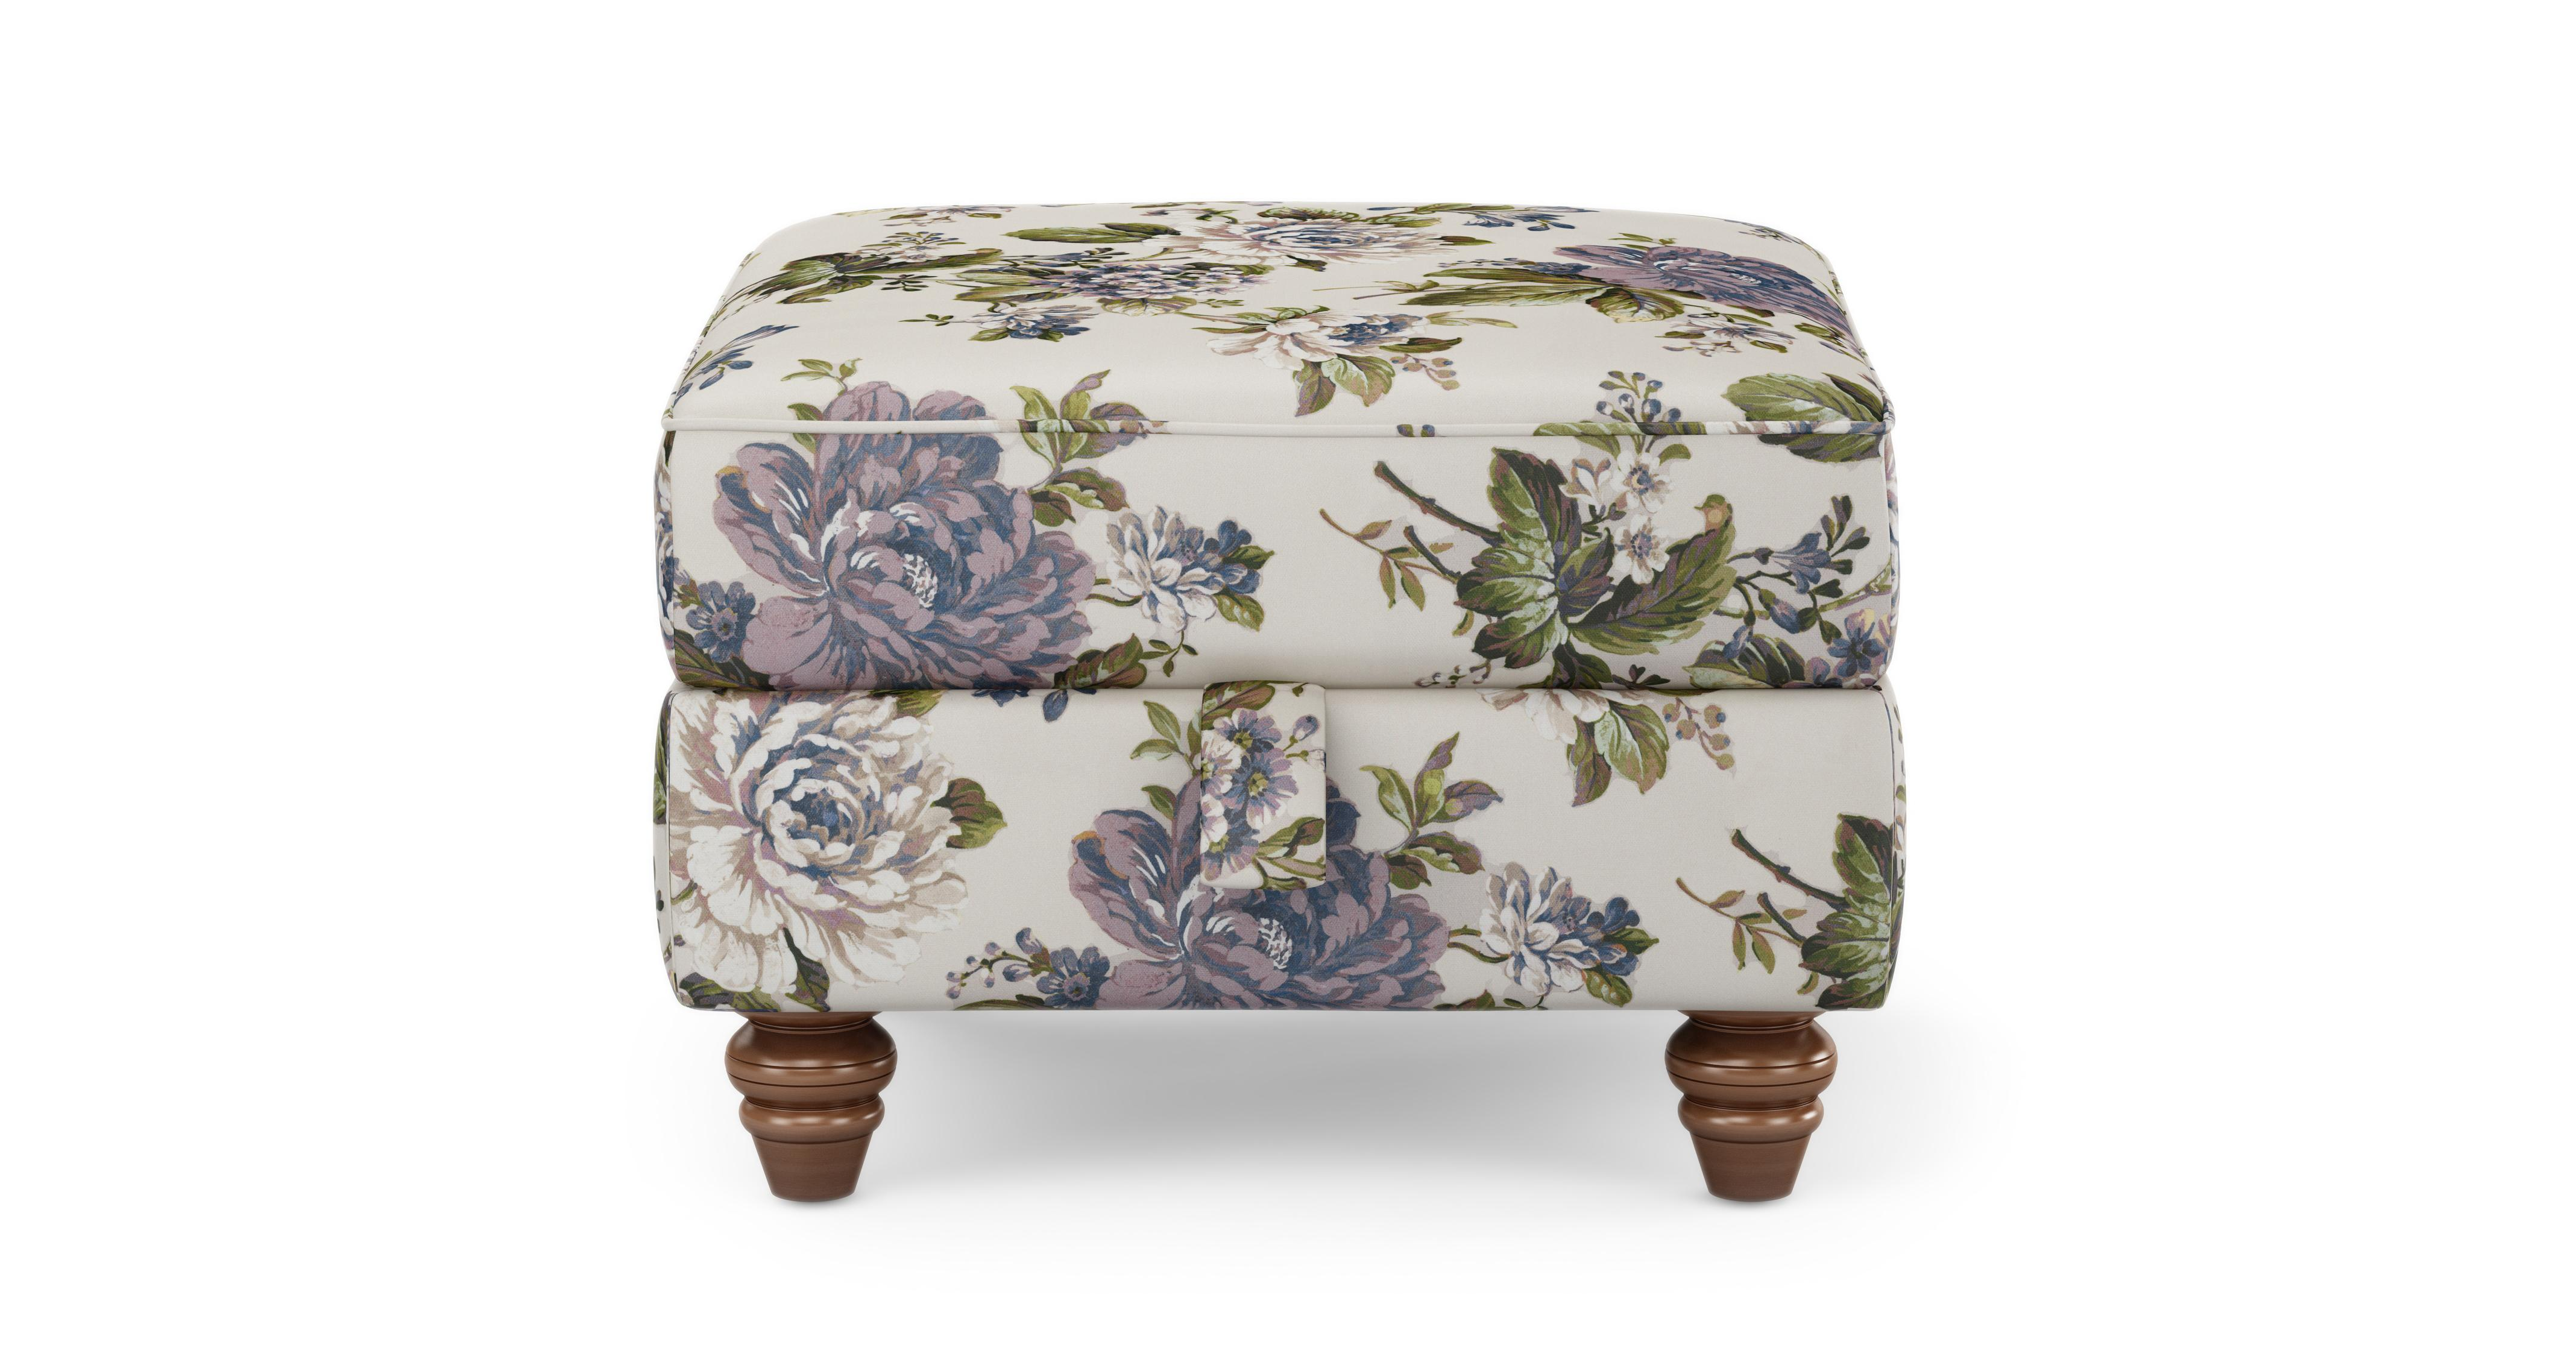 console know styles grey with need you about ottoman also wonderful floral to laminated table chair brown tufted furniture all modern wood style